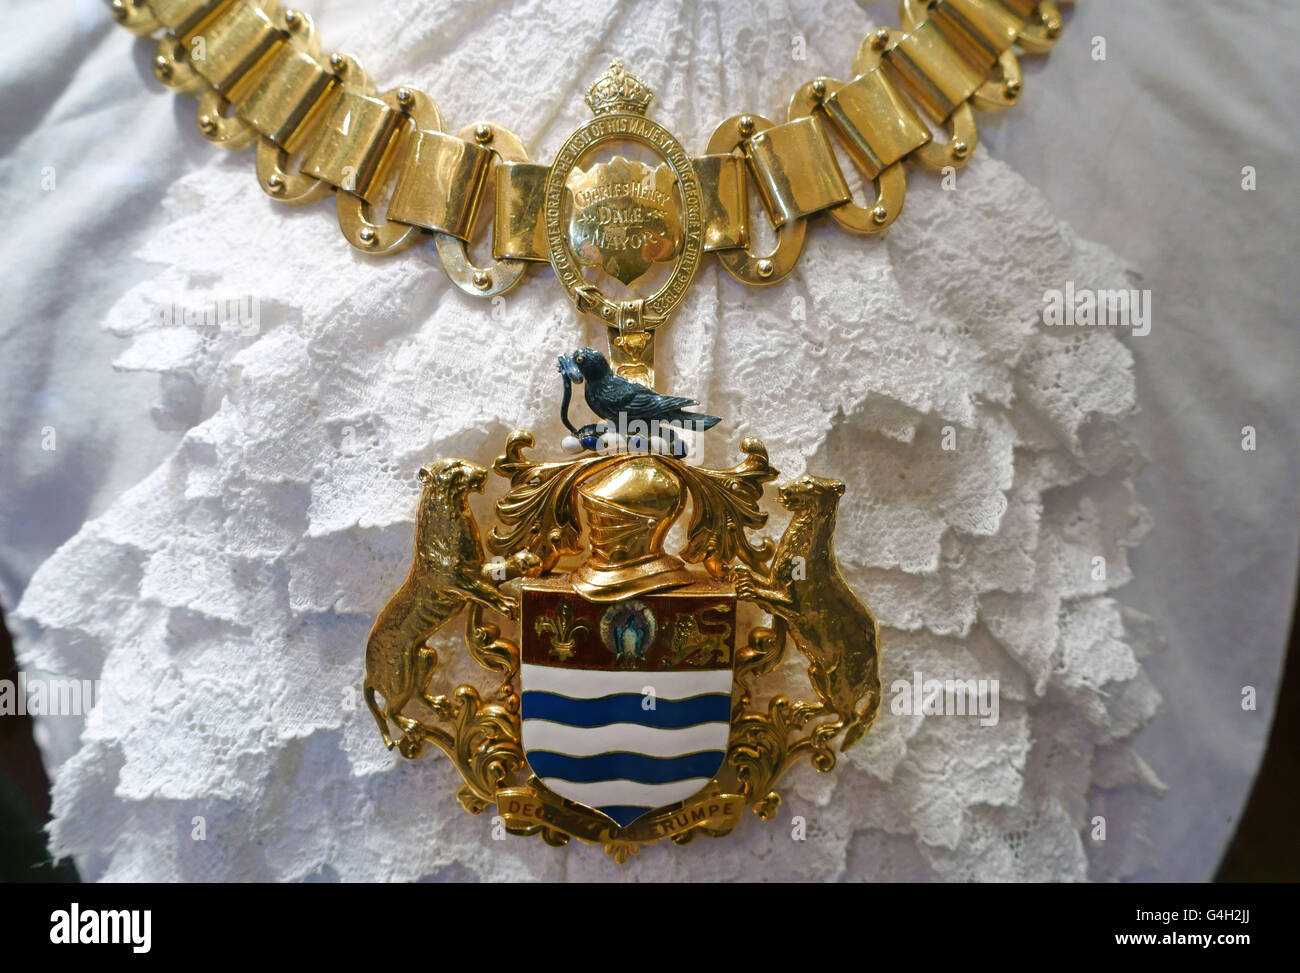 Gold mayoral chain of office in Newark Town Hall, Nottinghamshire, England - Stock Image